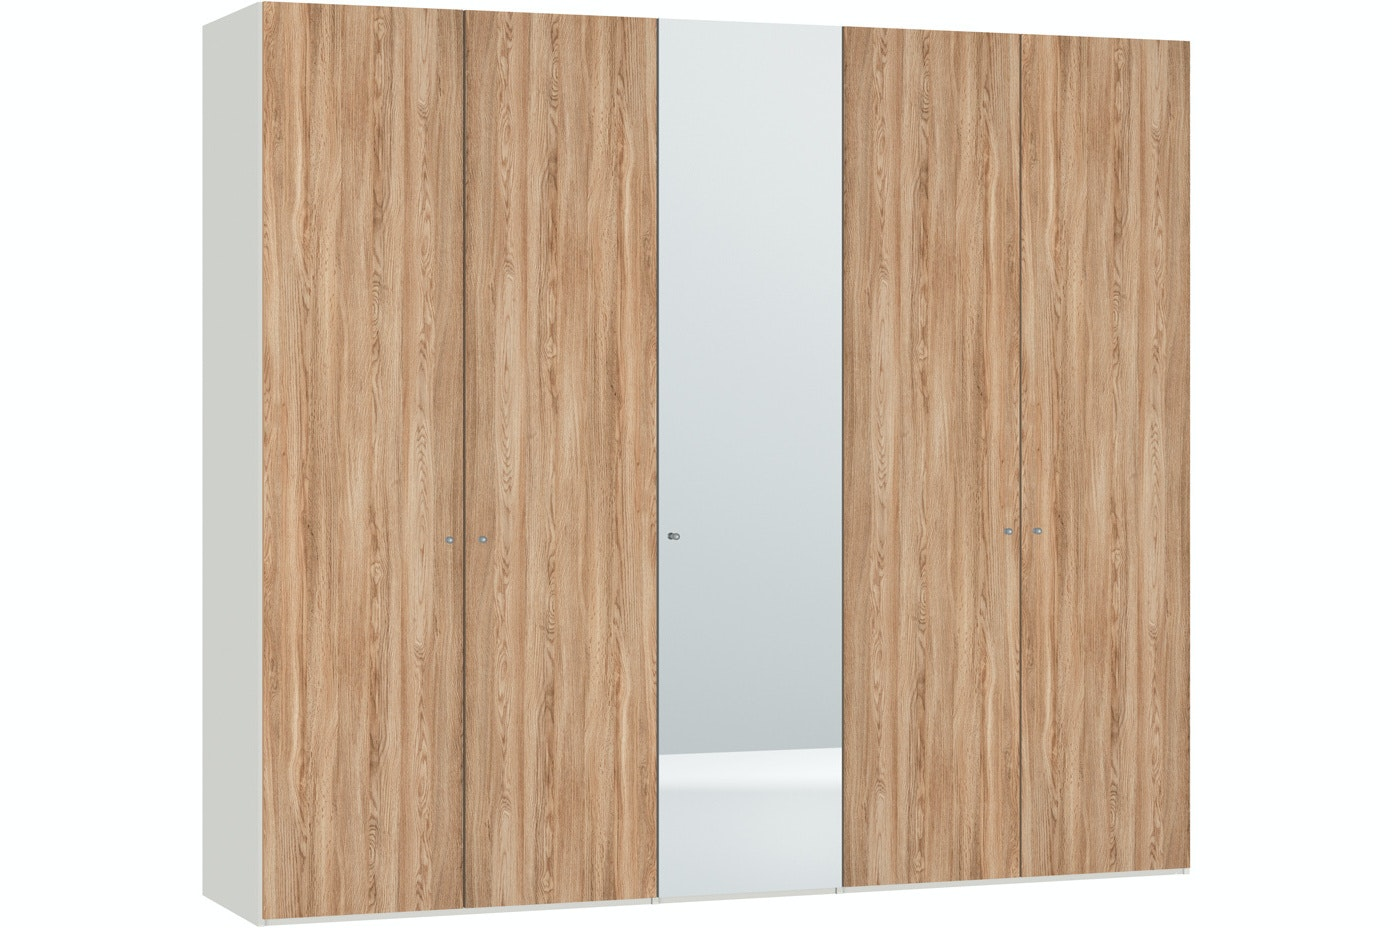 Christine Hinged 5 Door Wardrobe 253Cm |Oak + Mirror